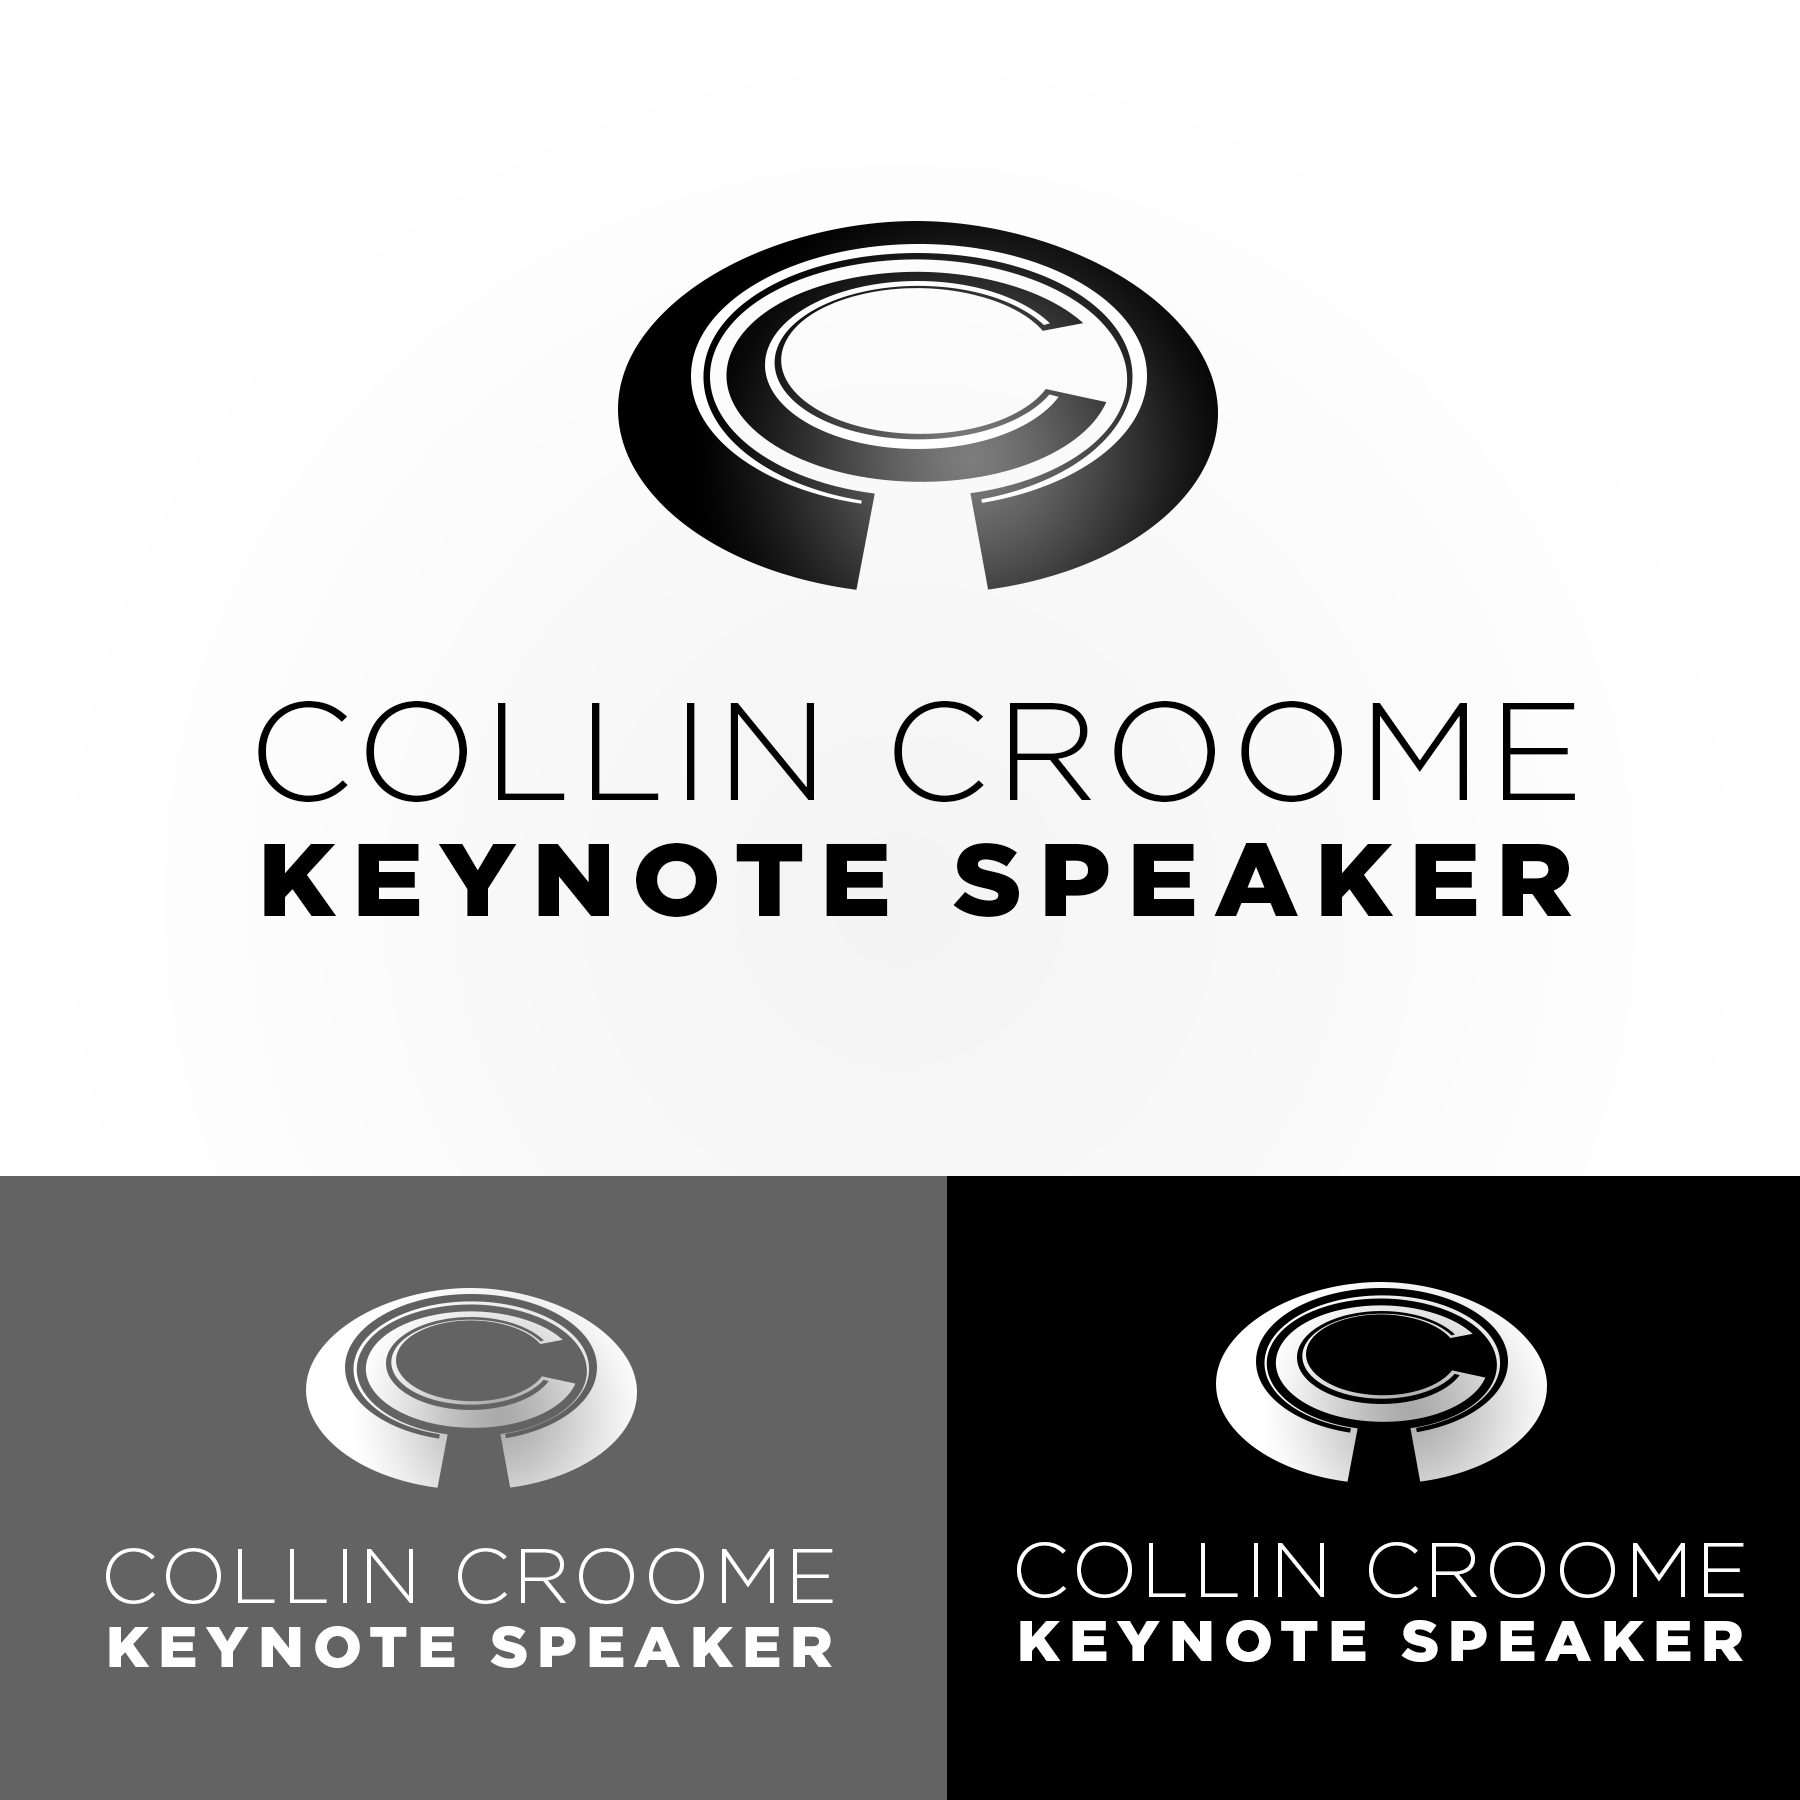 Logo Design by Lemuel Arvin Tanzo - Entry No. 307 in the Logo Design Contest Modern Logo Design for Collin Croome.